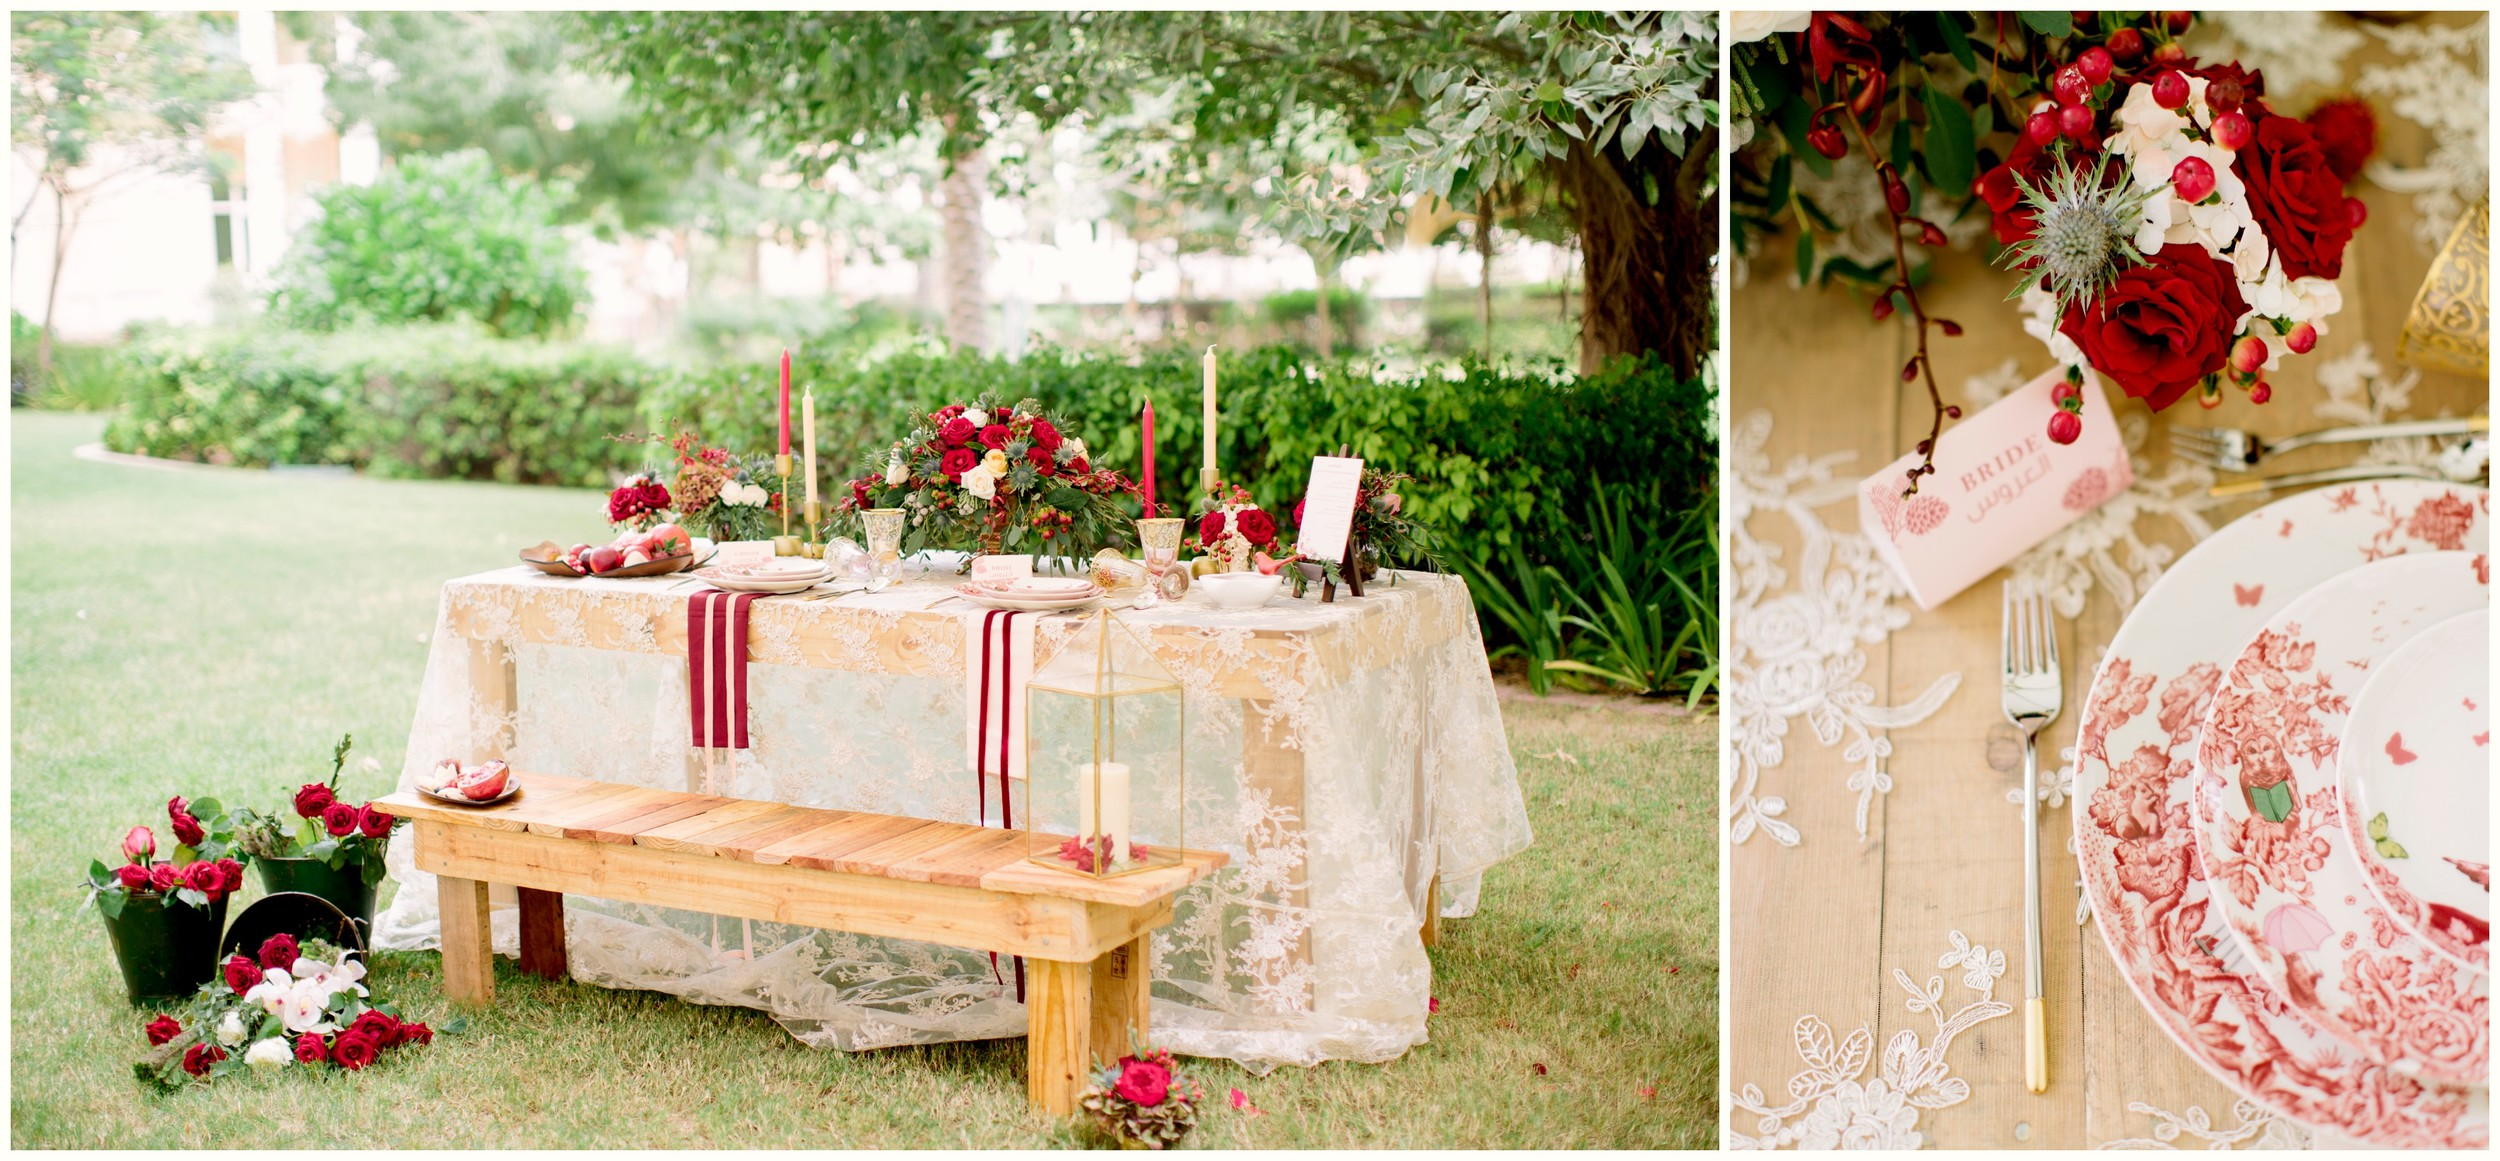 Furniture & Table Linens:  Party Socia l